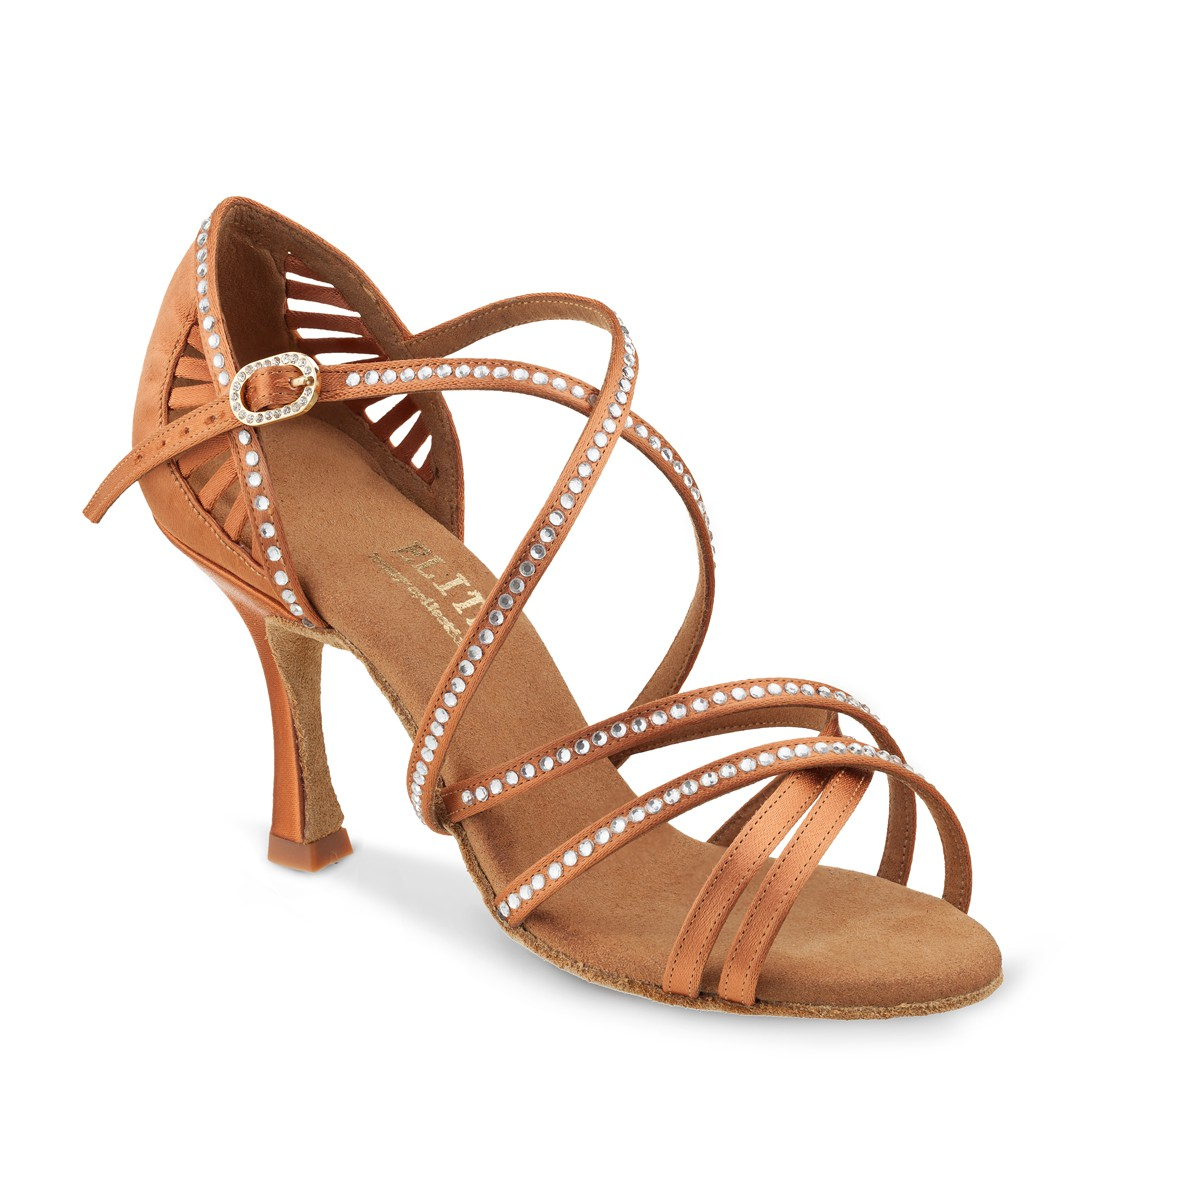 ef52ea5285 LADIES TAN COLOUR SALSA SHOES WITH CRYSTALS Bronze sandal style heels for  dancing bachata